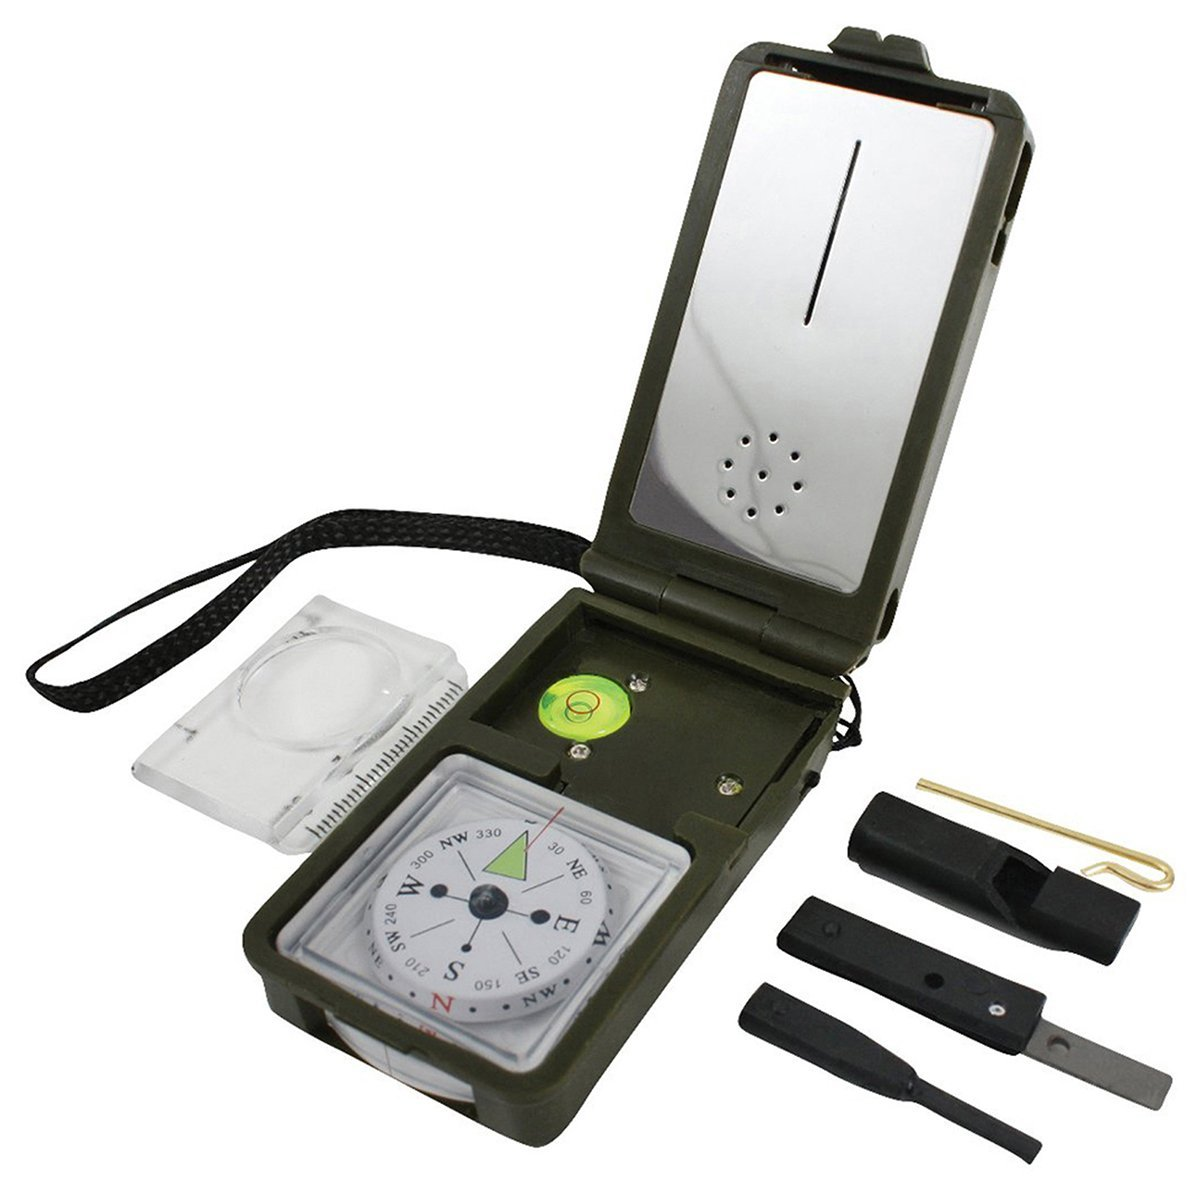 Multi-Function Compass Kit, Olive Drab, Quality tested and ensured for maximum durability By Rothco